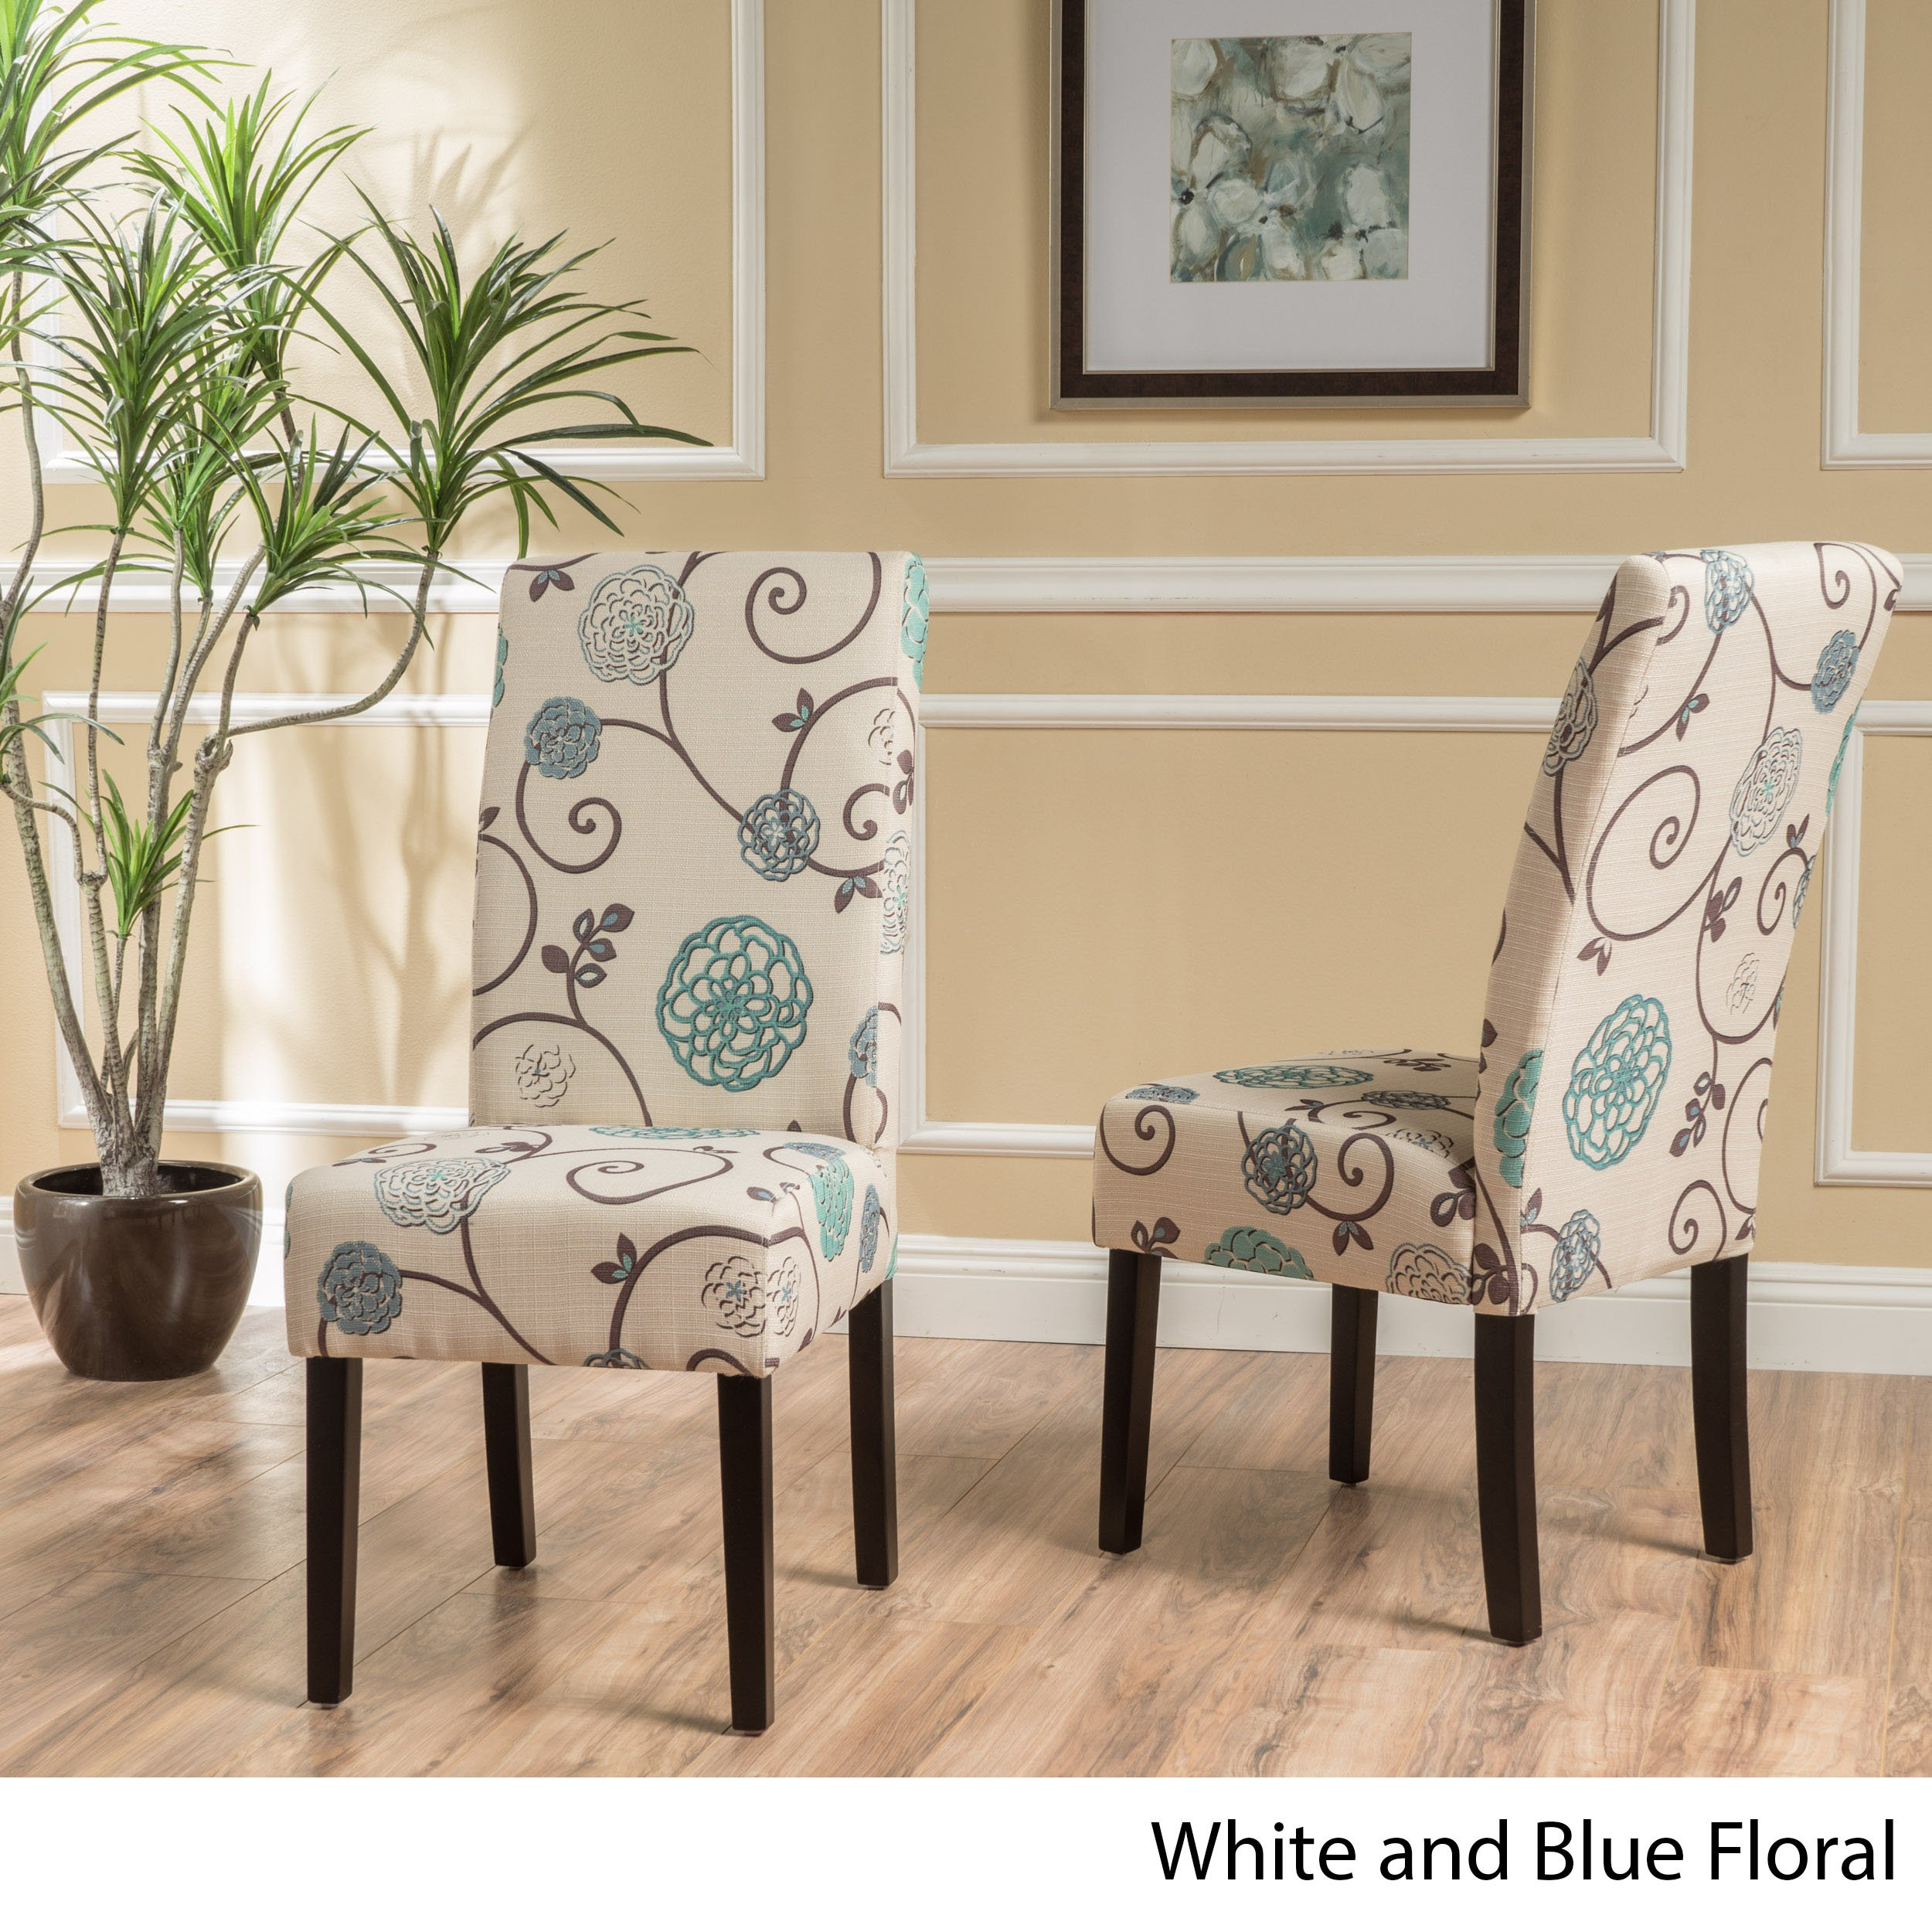 Christopher Knight Home 299448 Pertica Dining Chair Set, White/Blue Floral by Christopher Knight Home (Image #1)